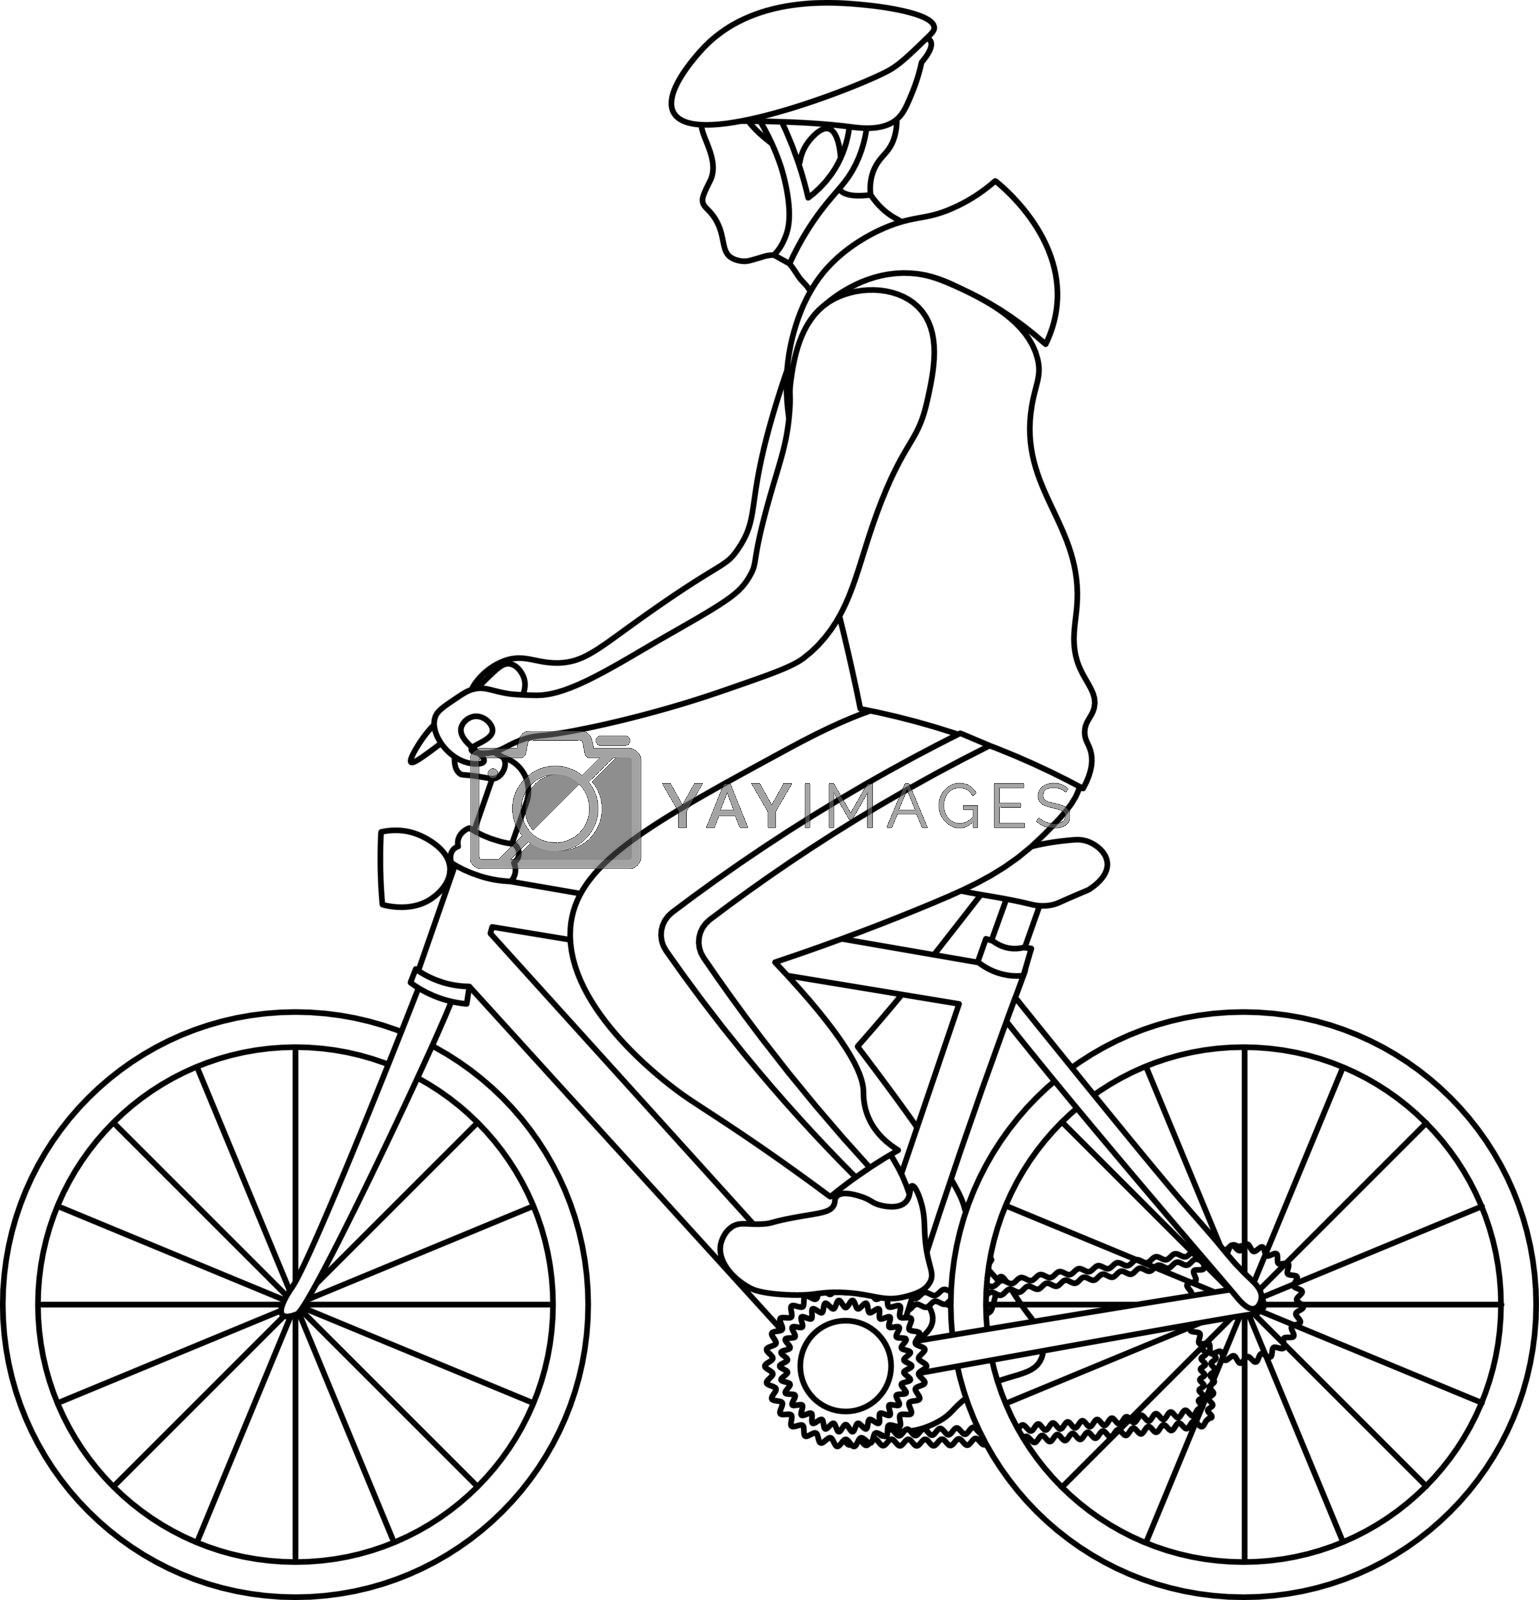 simple outline illustration with man in sportswear riding a bike